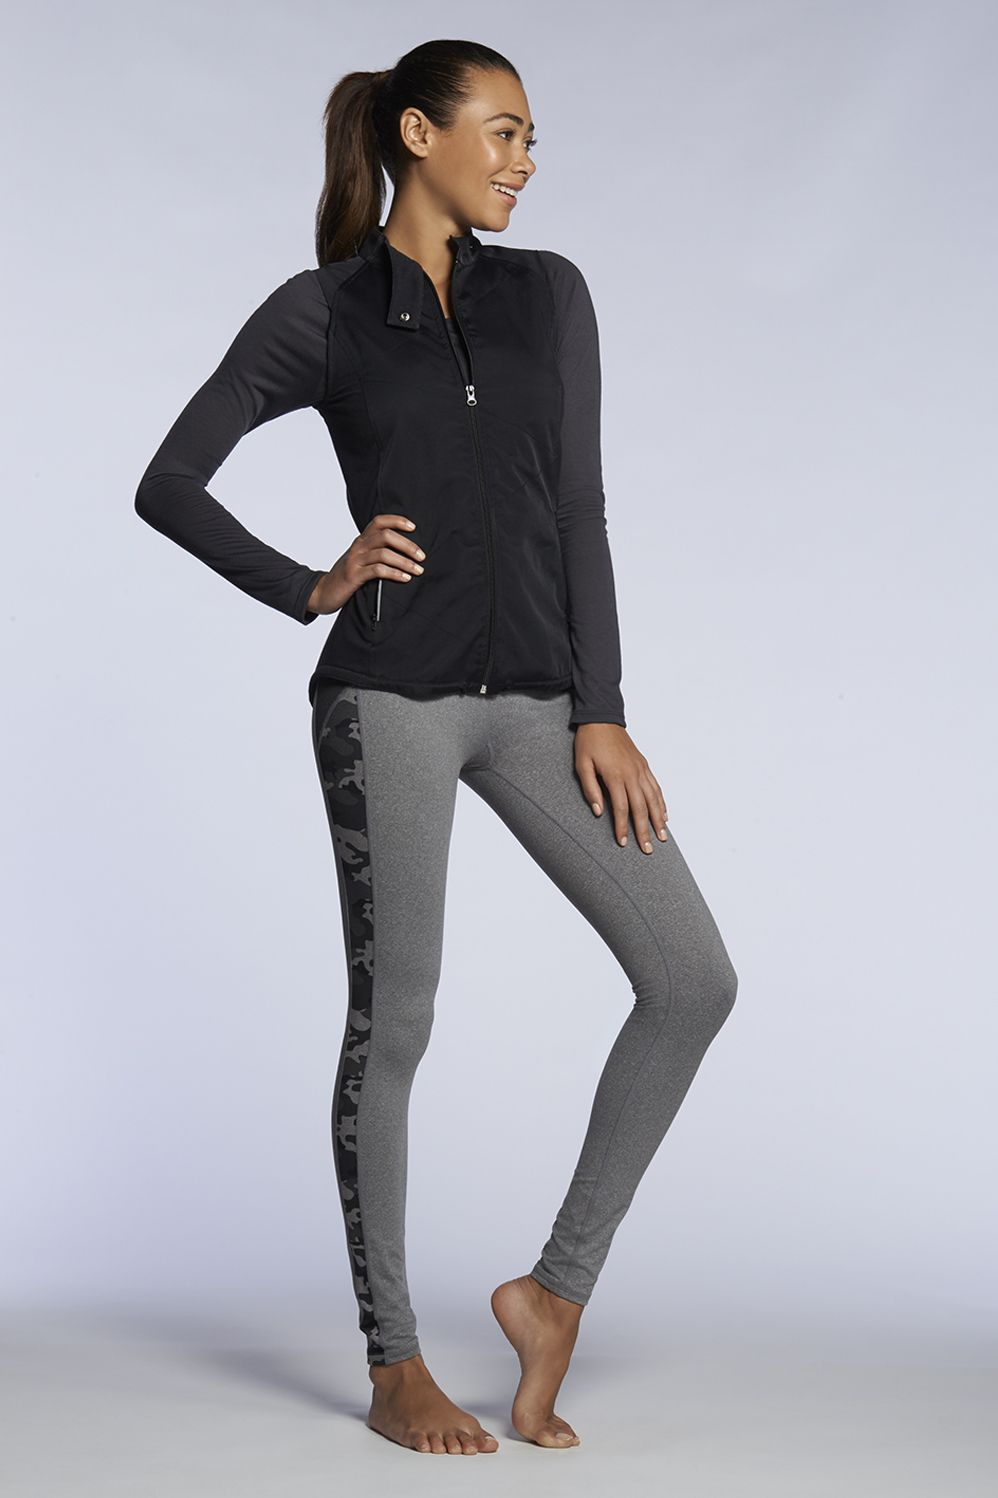 looks like cute athletic clothing. might give it a try!